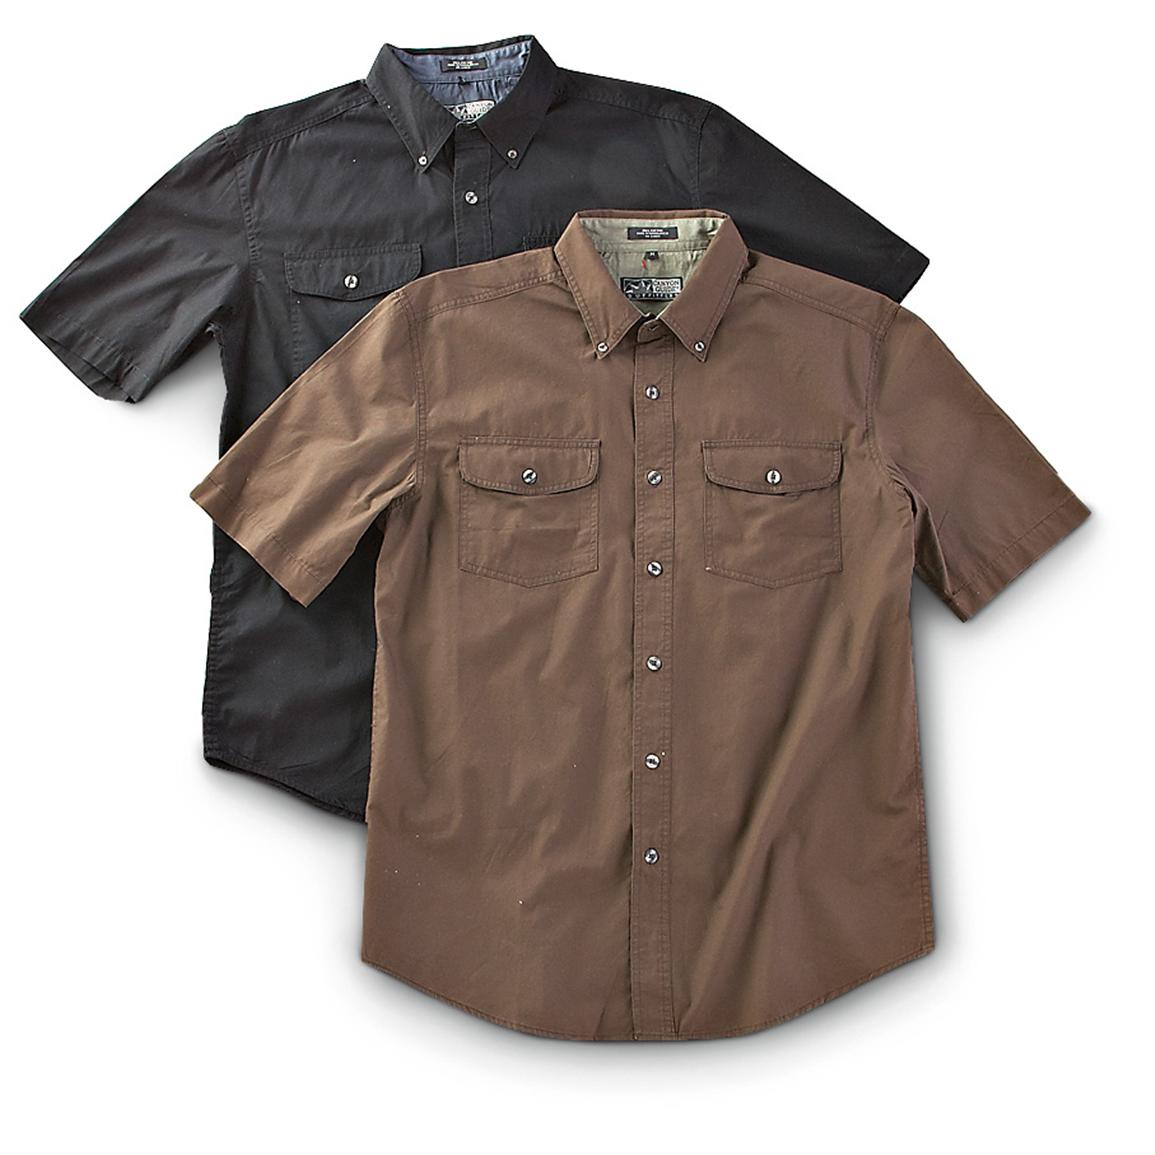 2 Canyon Guide® Short-sleeved Twill Shirts, Gray / Moss